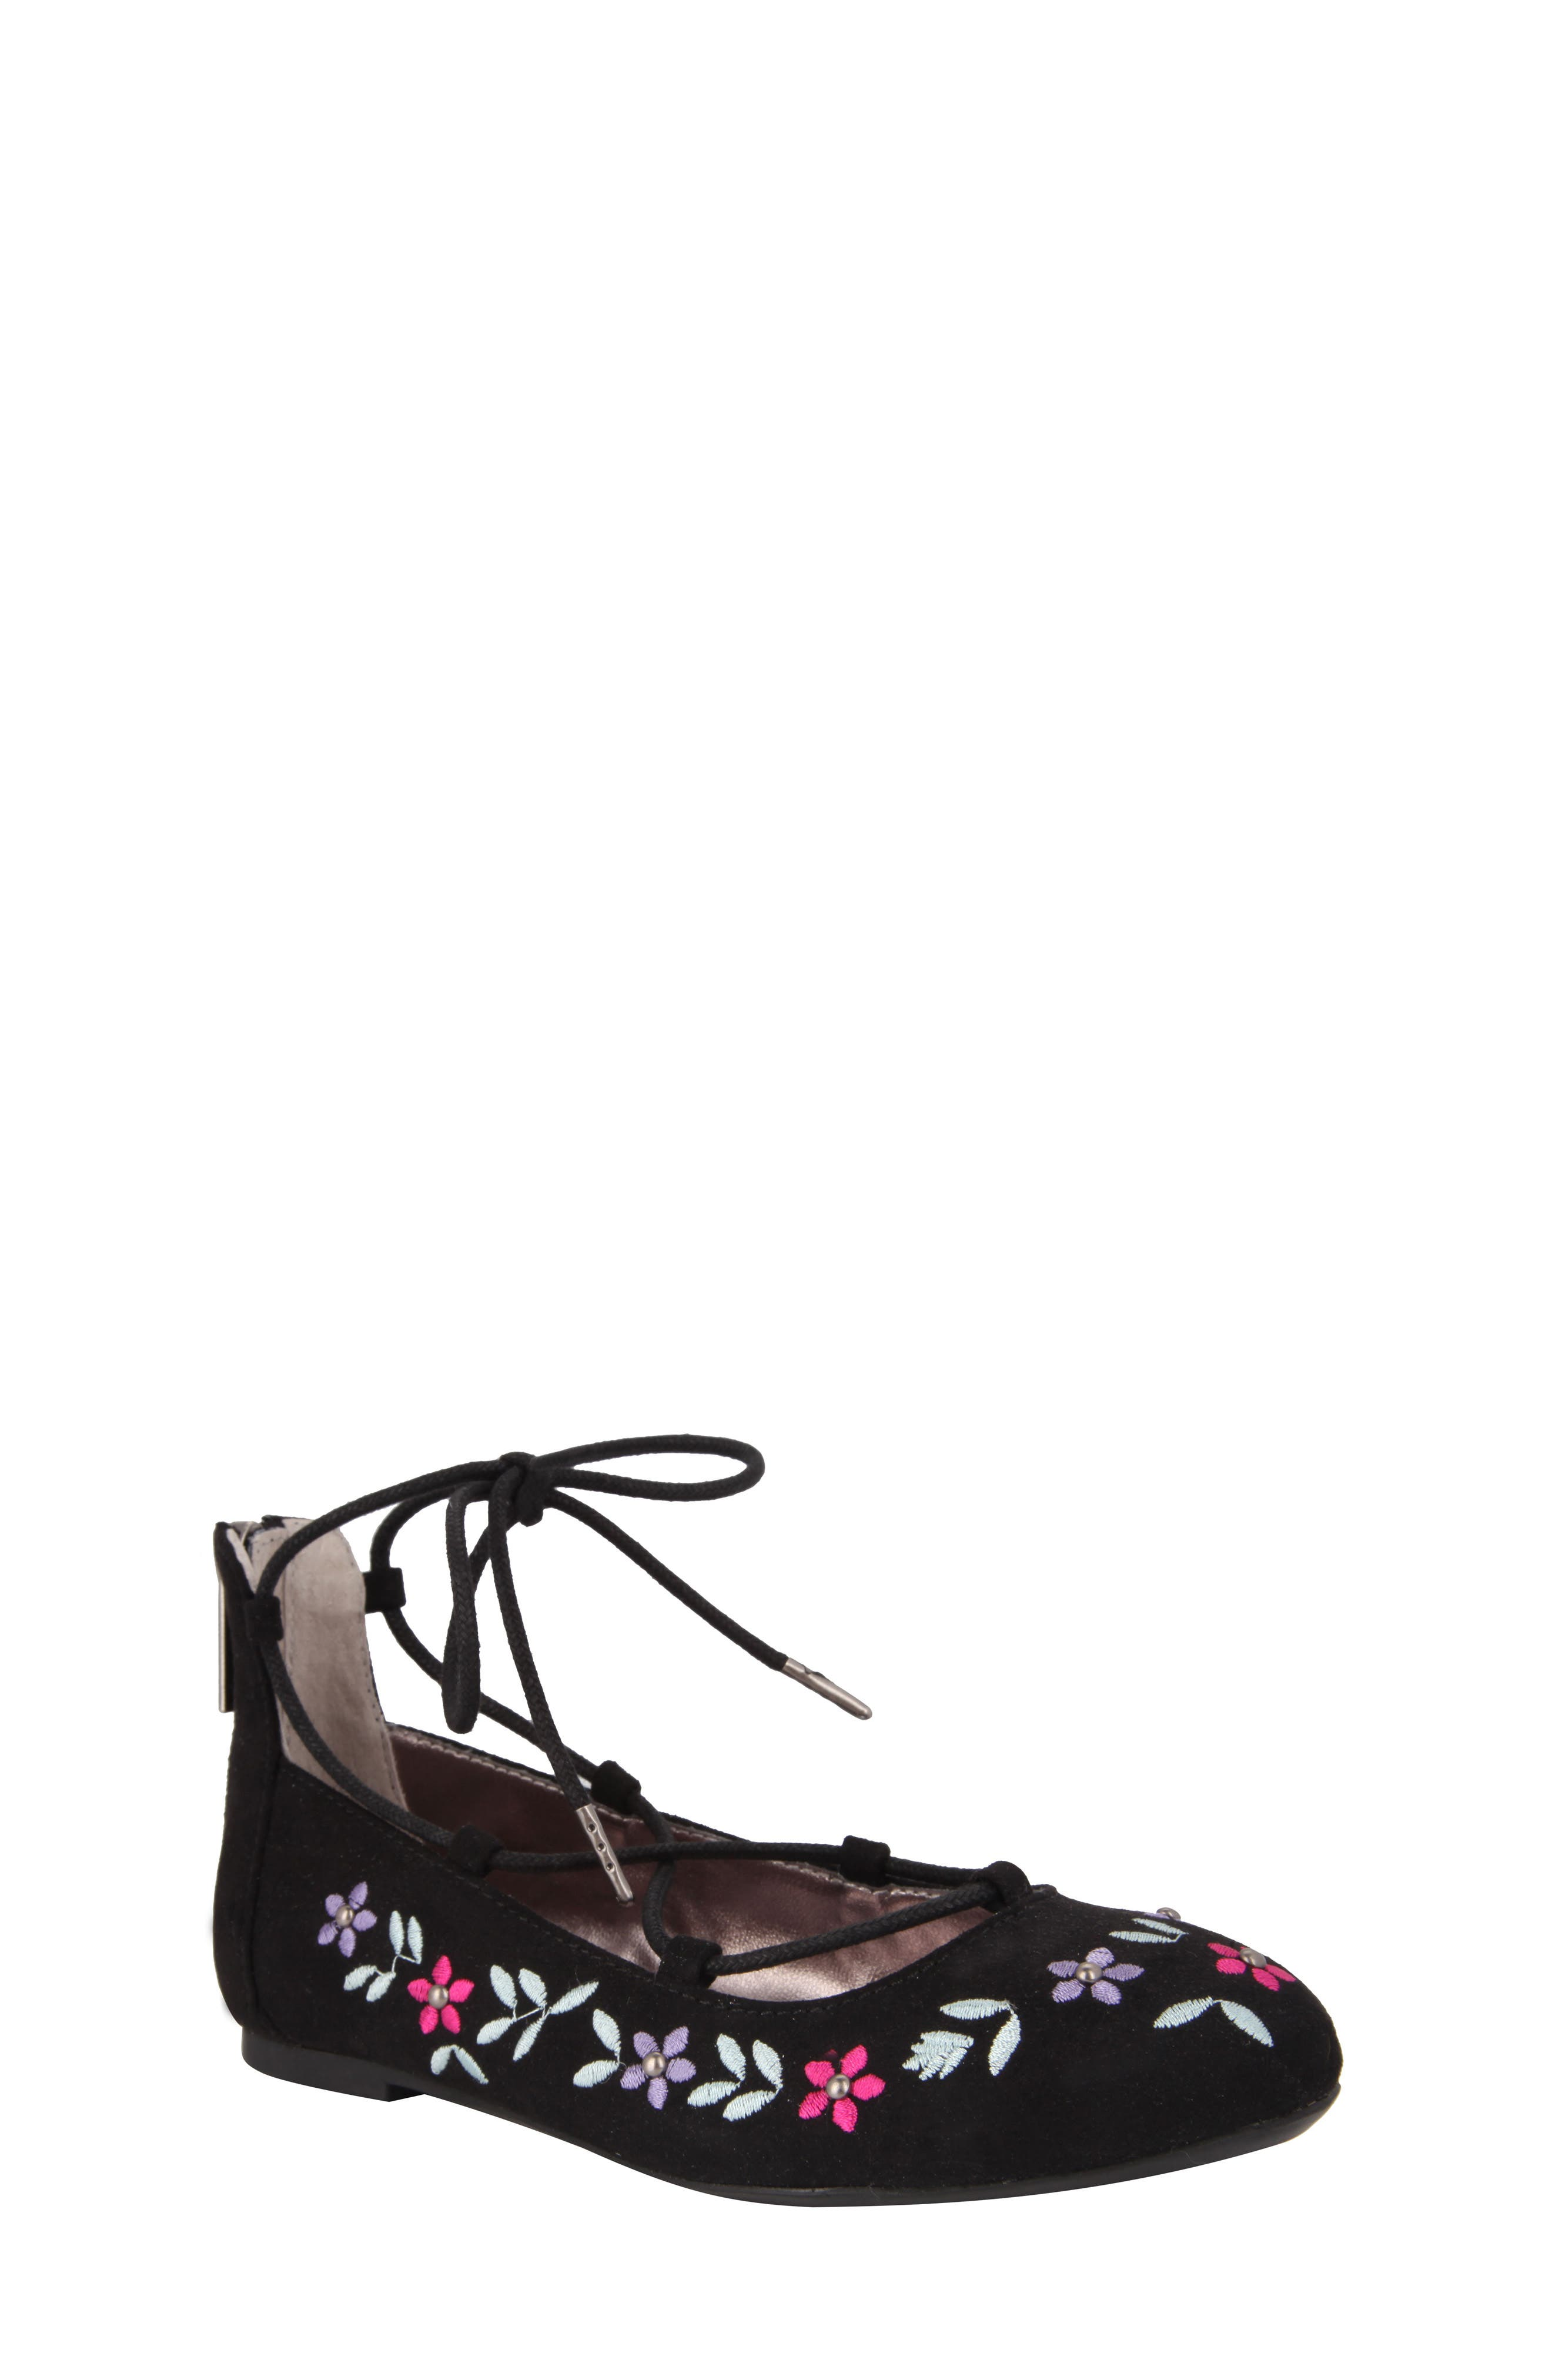 Alternate Image 1 Selected - Nina Nelly Embroidered Ghillie Flat (Little Kid & Big Kid)